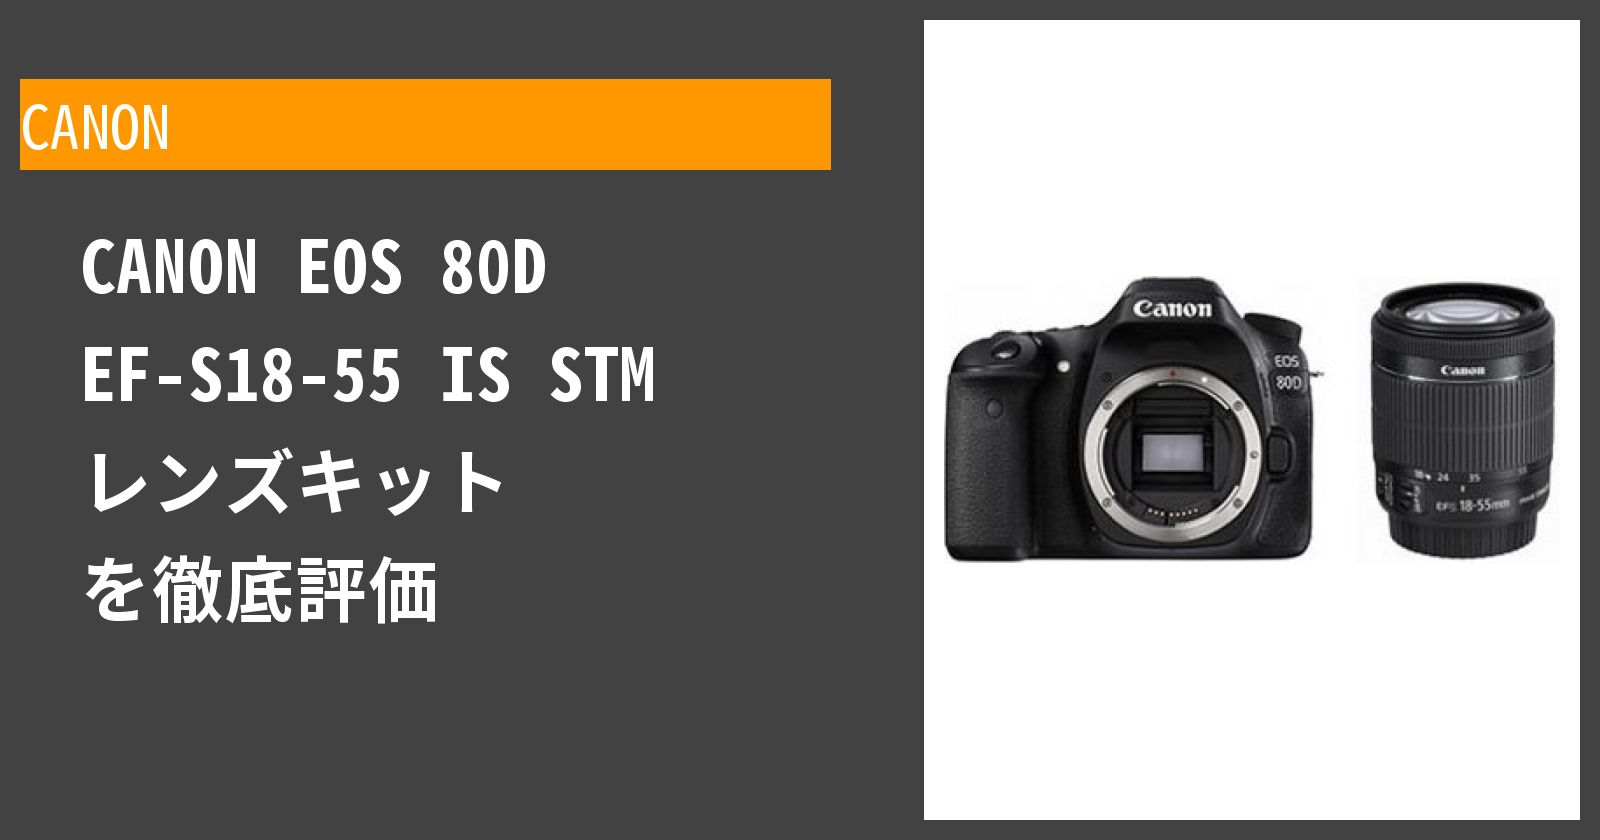 EOS 80D EF-S18-55 IS STM レンズキットを徹底評価